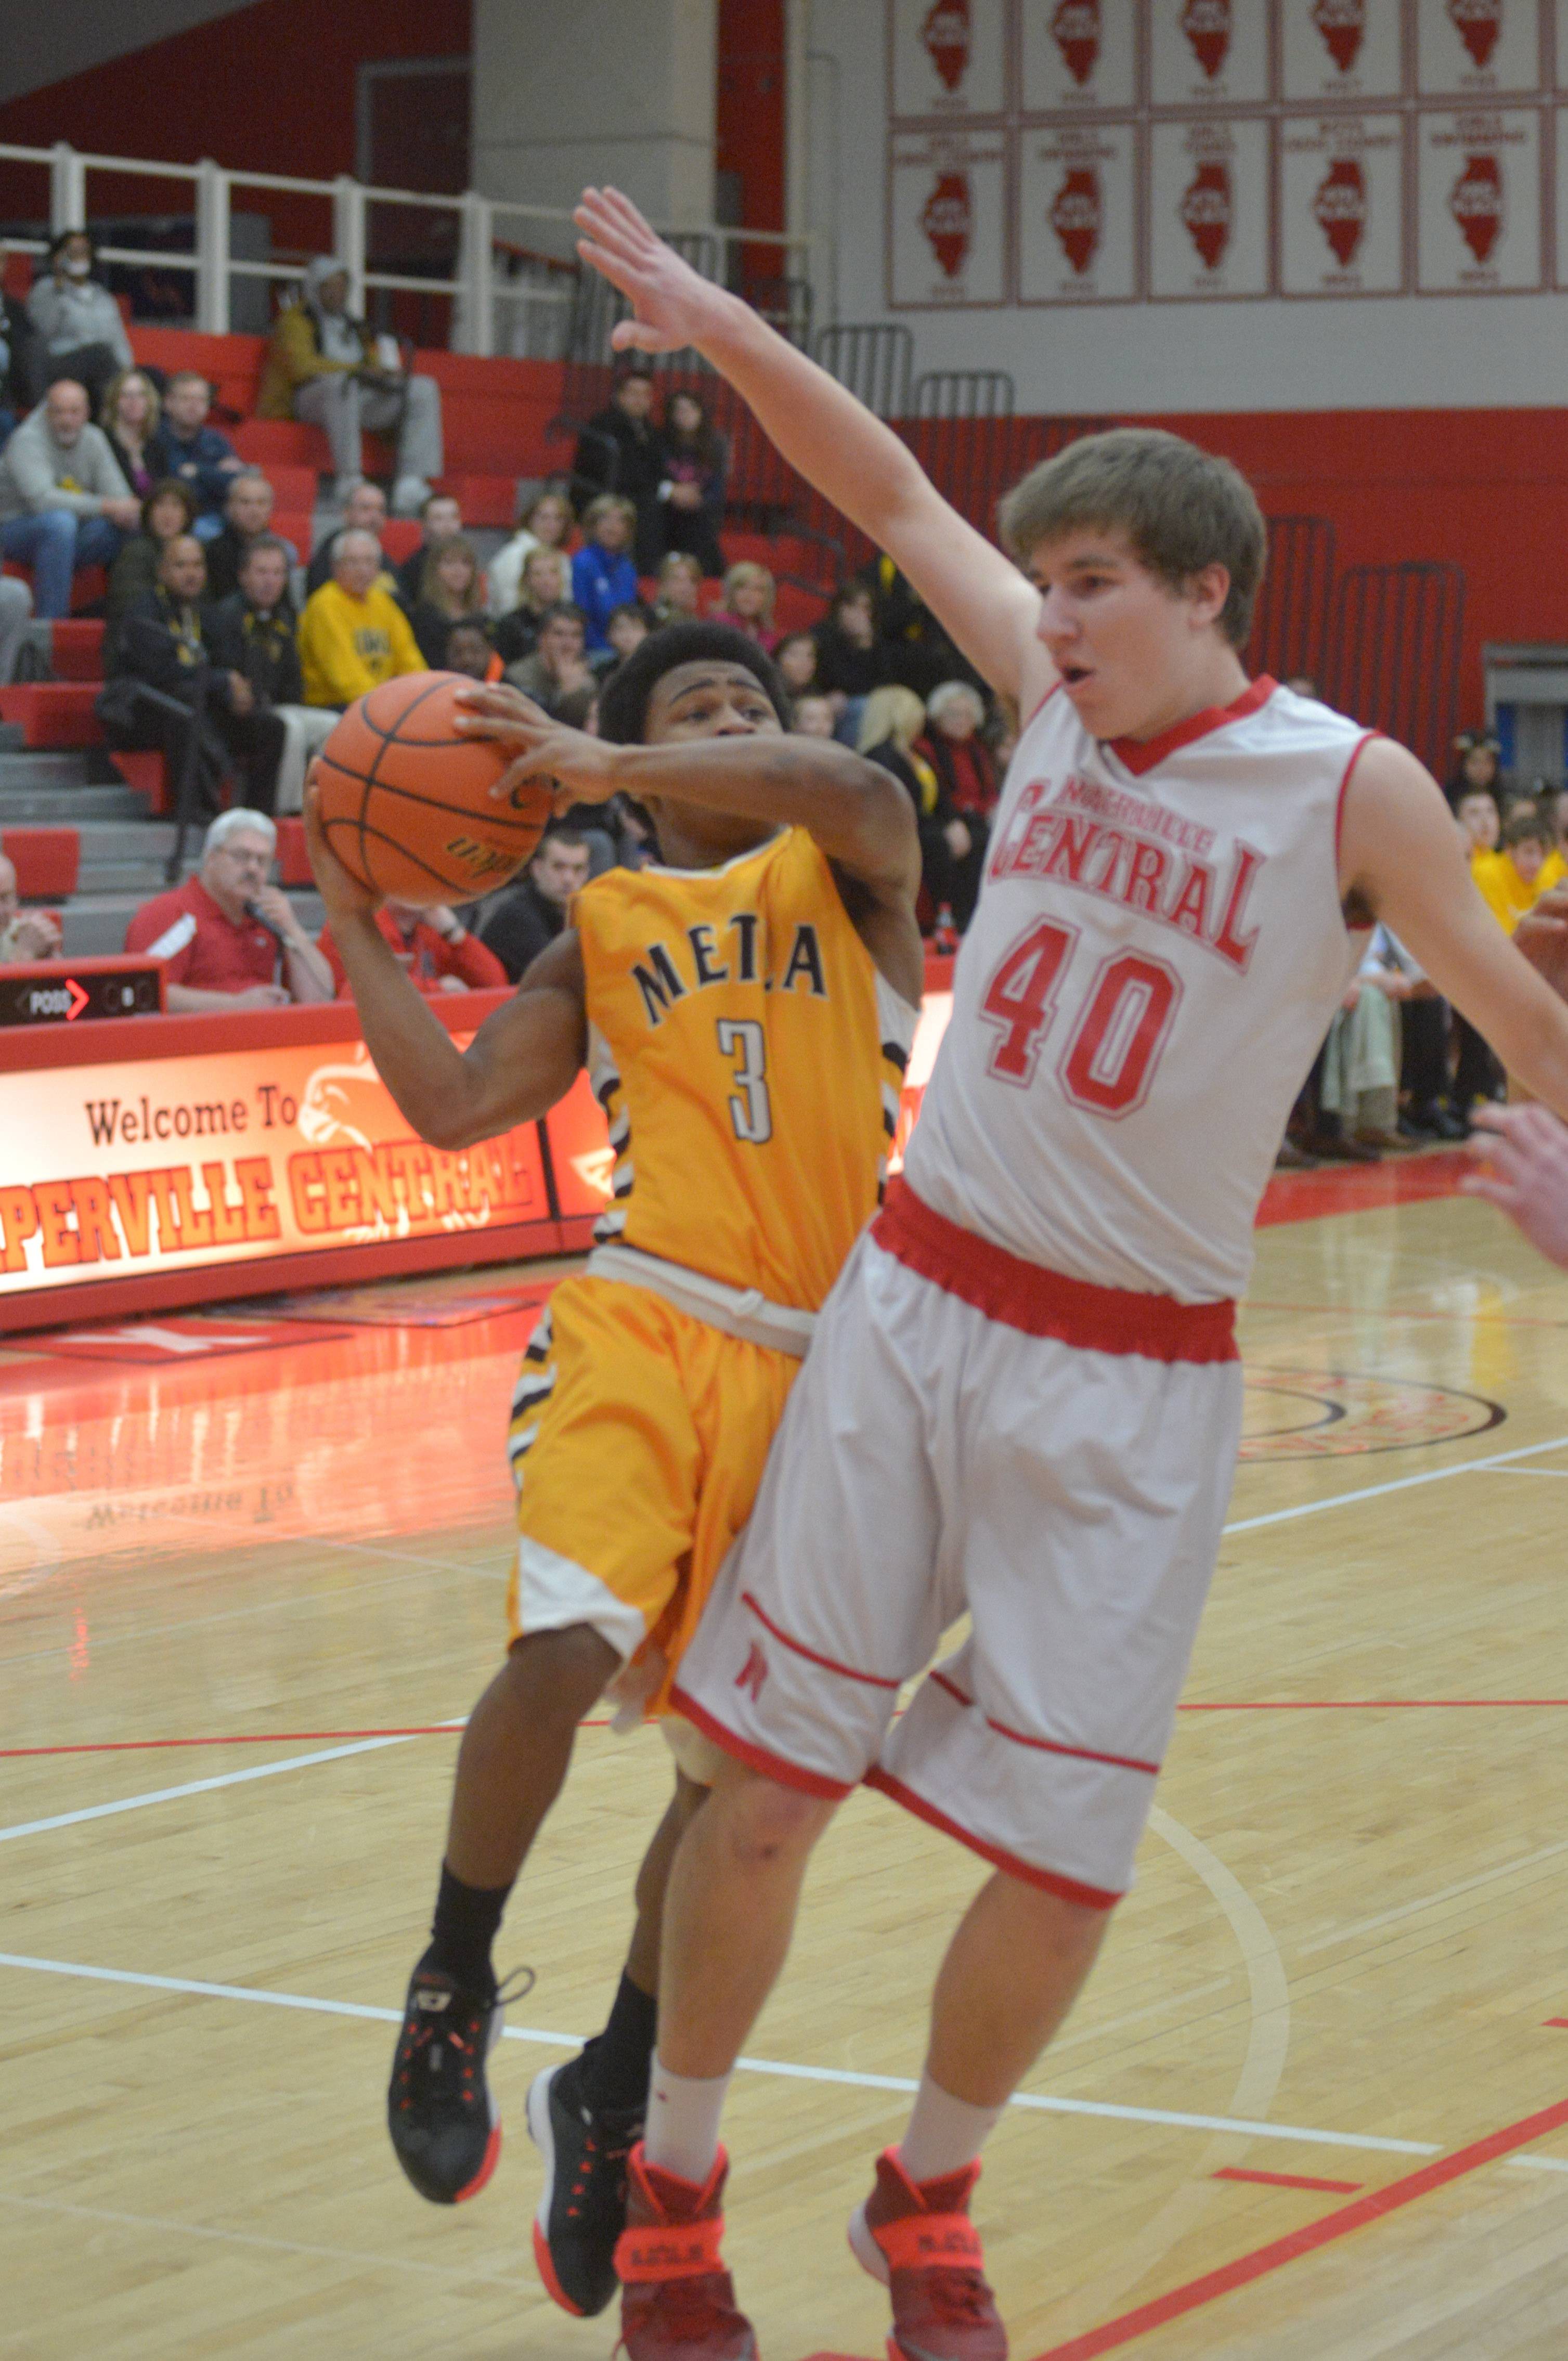 Metea Valley vs. Naperville Central at Class 4A Naperville Central regional semifinals boys basketball action Wednesday, March 5.